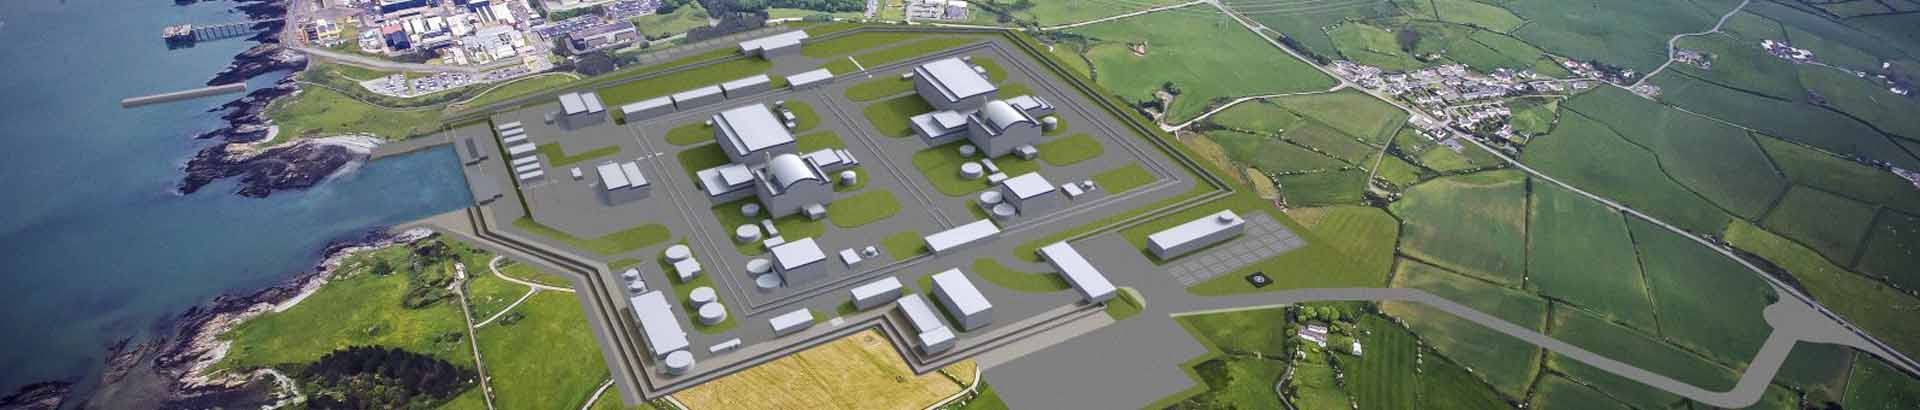 A rendering of the nuclear plant's site